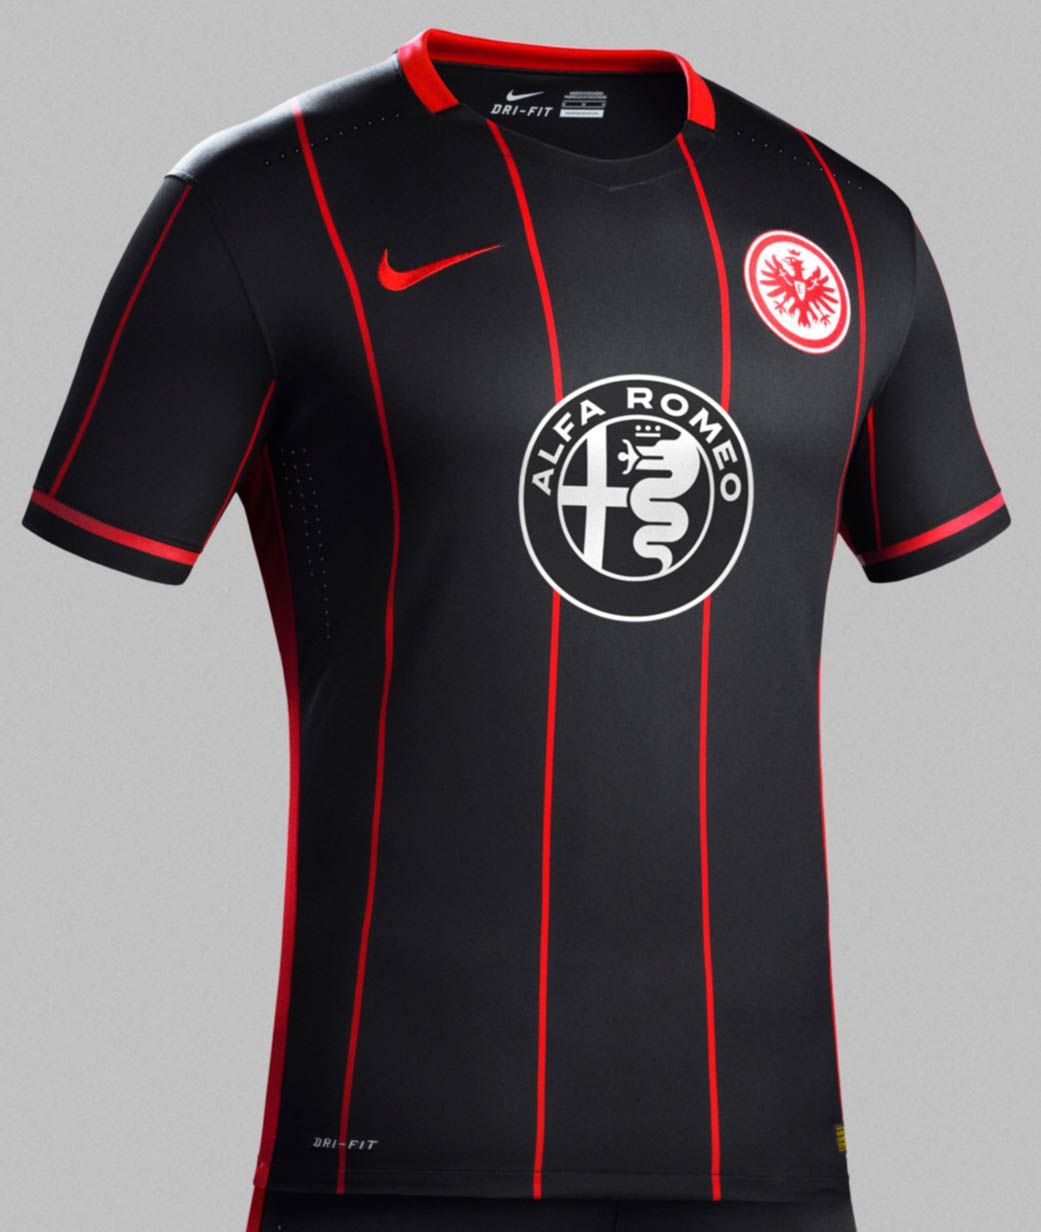 The new Nike Eintracht Frankfurt Home Kit features a fresh pinstripes  design, while the Eintracht Frankfurt Away Kit is kept simple in white and  black.